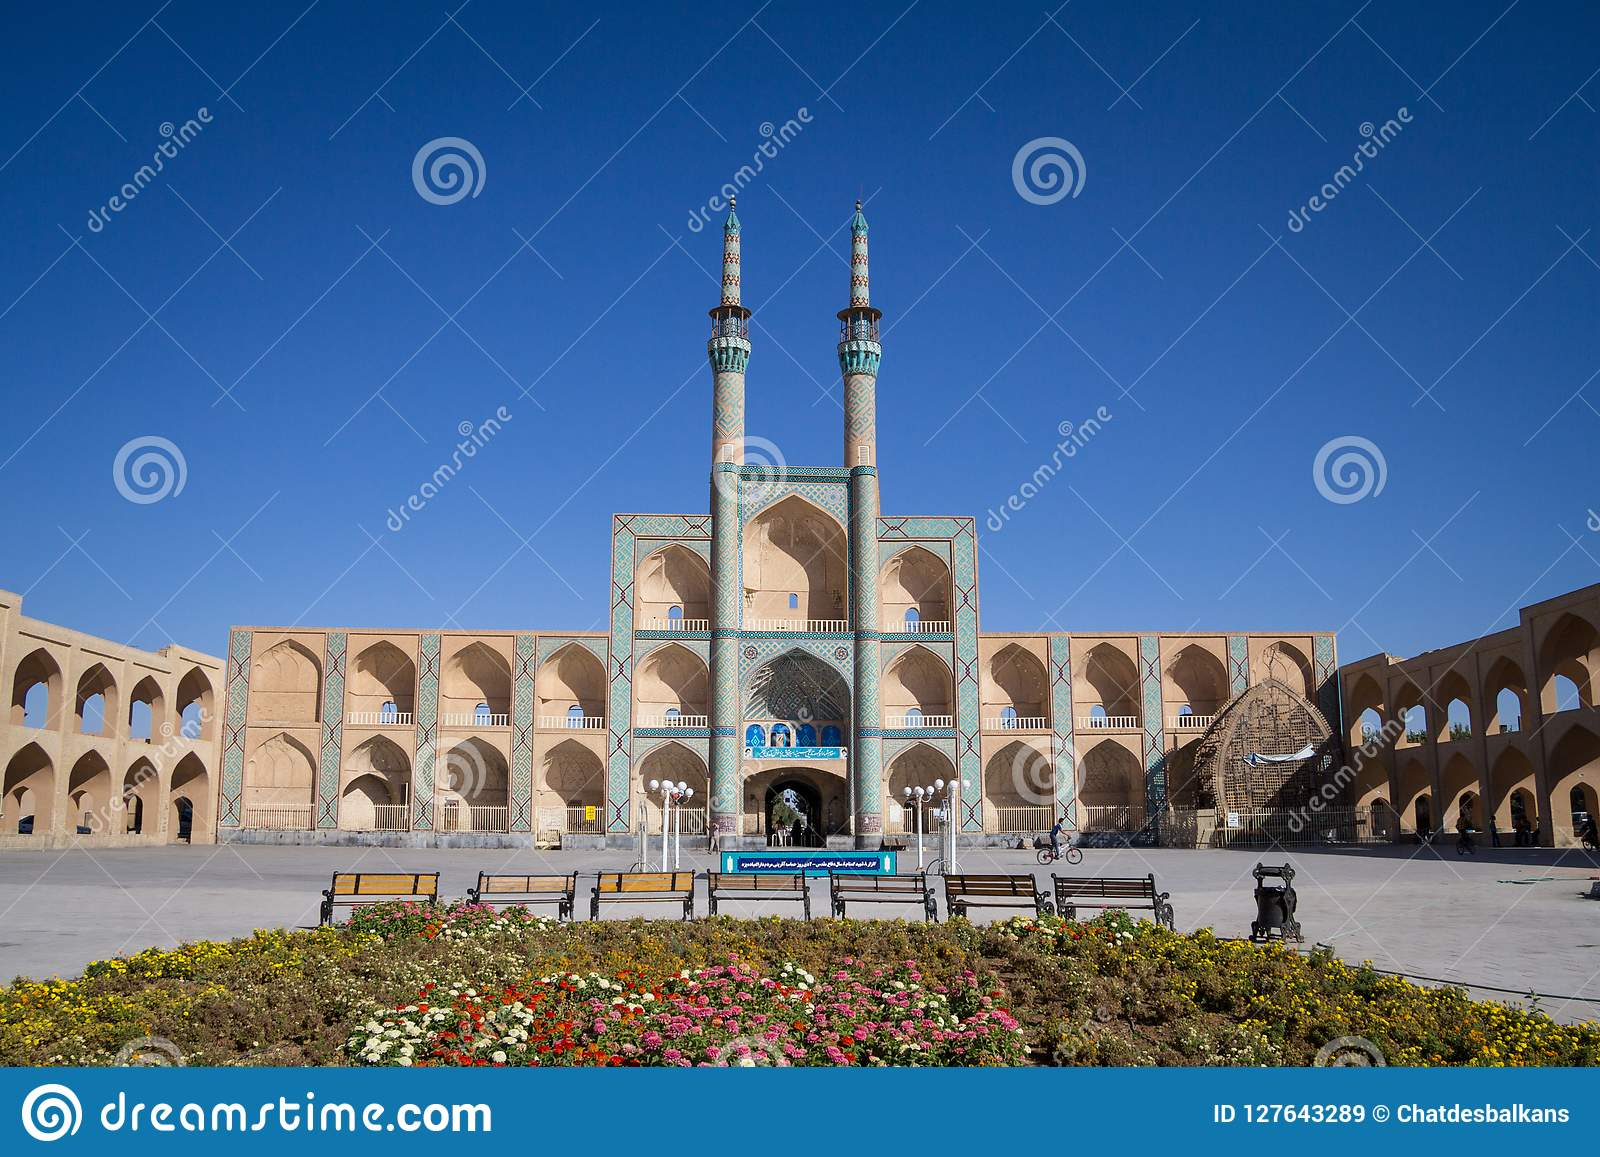 Amir Chakhmaq complex in summer. It is a mosque located on a square of the same name, and a major landmark of Yazd